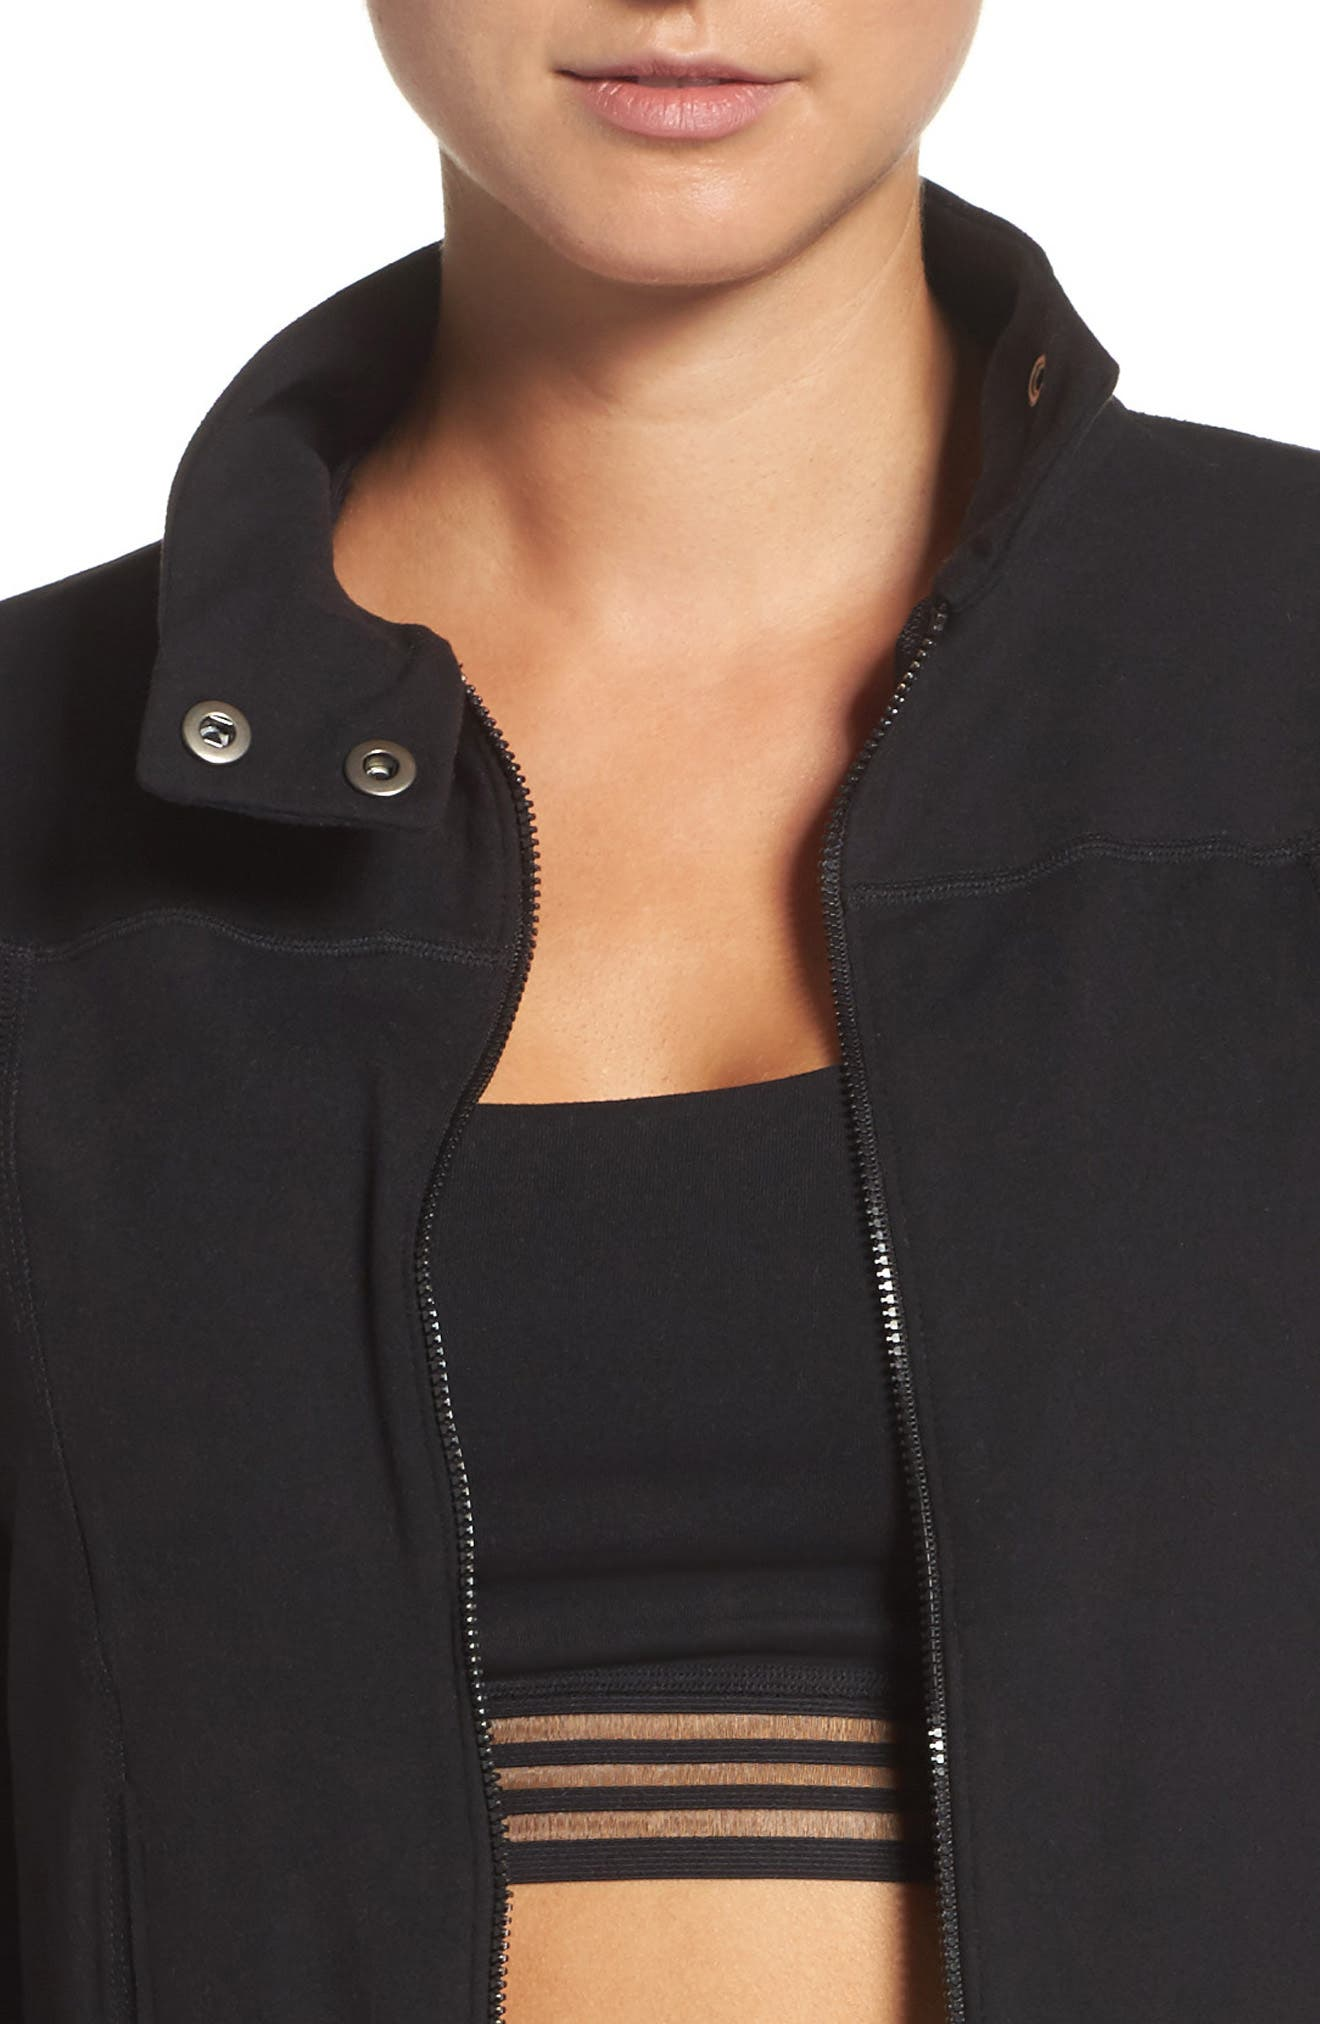 Boxed In Crop Jacket,                             Alternate thumbnail 4, color,                             002